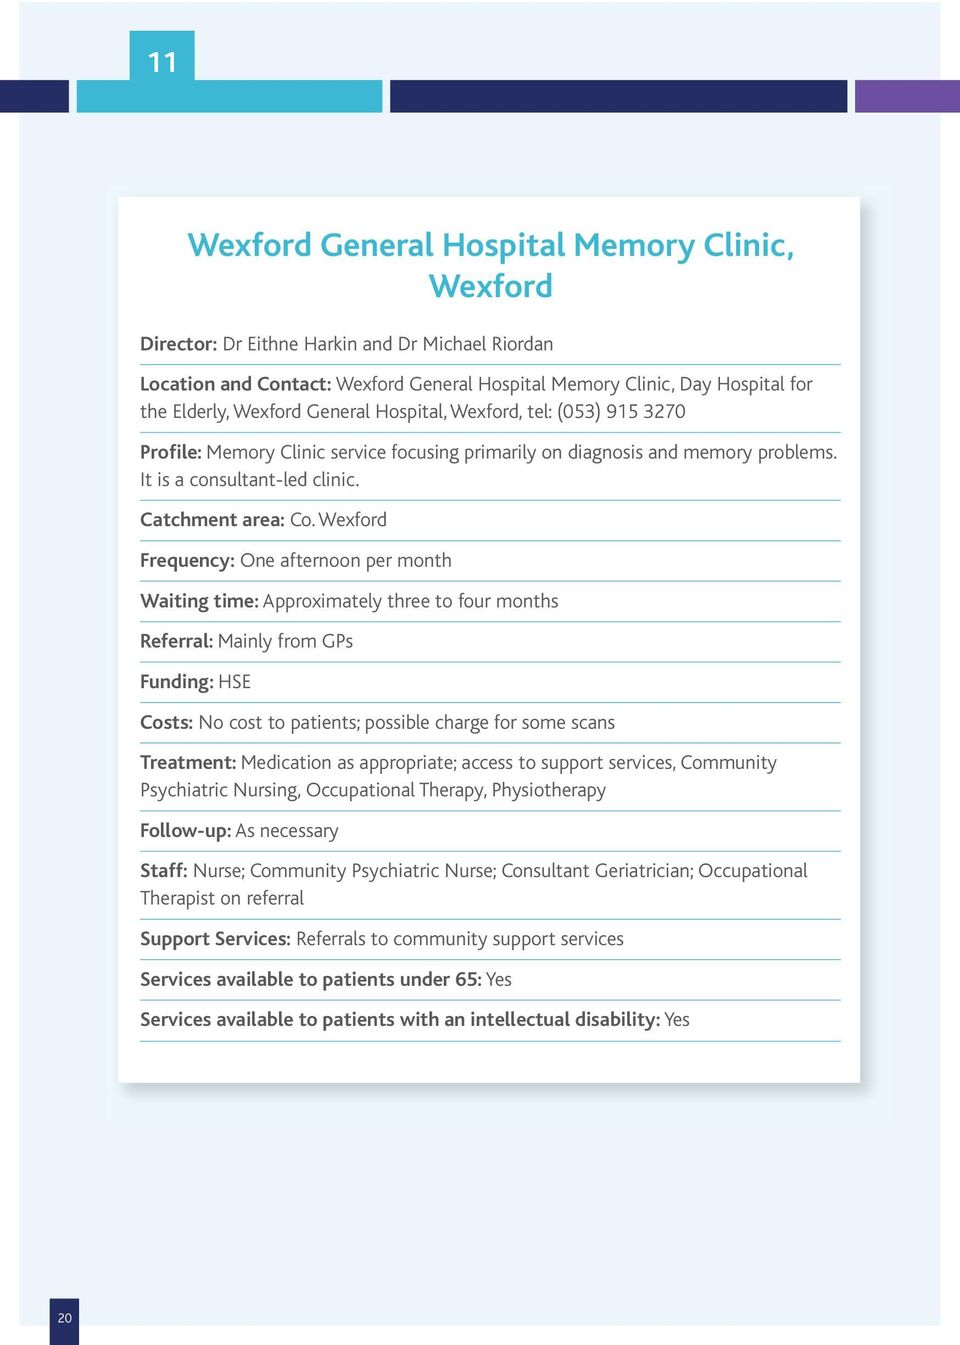 Wexford Frequency: One afternoon per month Waiting time: Approximately three to four months Referral: Mainly from GPs Funding: HSE Costs: No cost to patients; possible charge for some scans